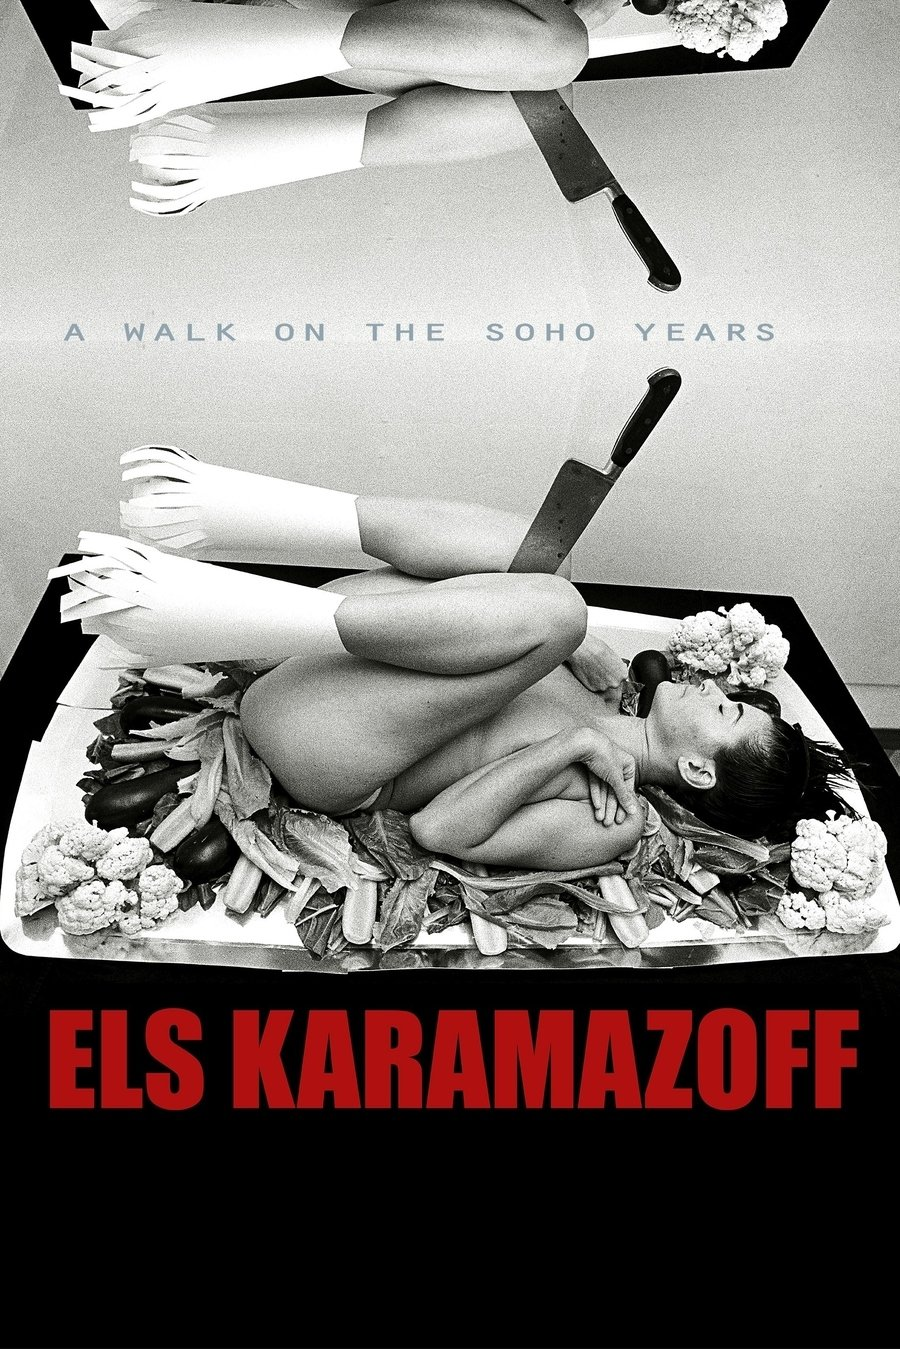 Os Karamazoff, a walk on the SoHo years